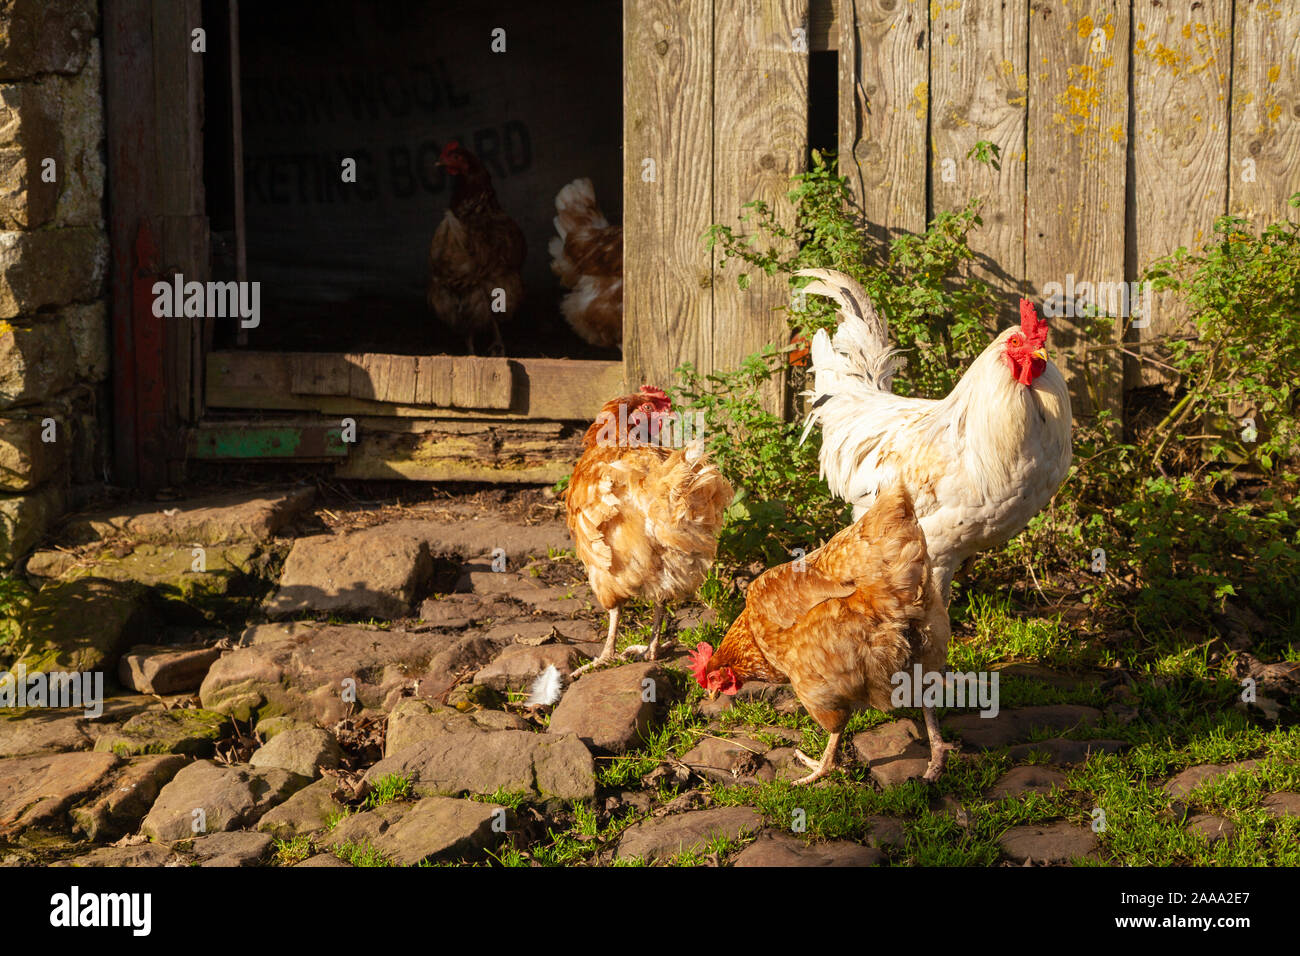 Chickens In Local Poultry Farm High Resolution Stock Photography And Images Alamy